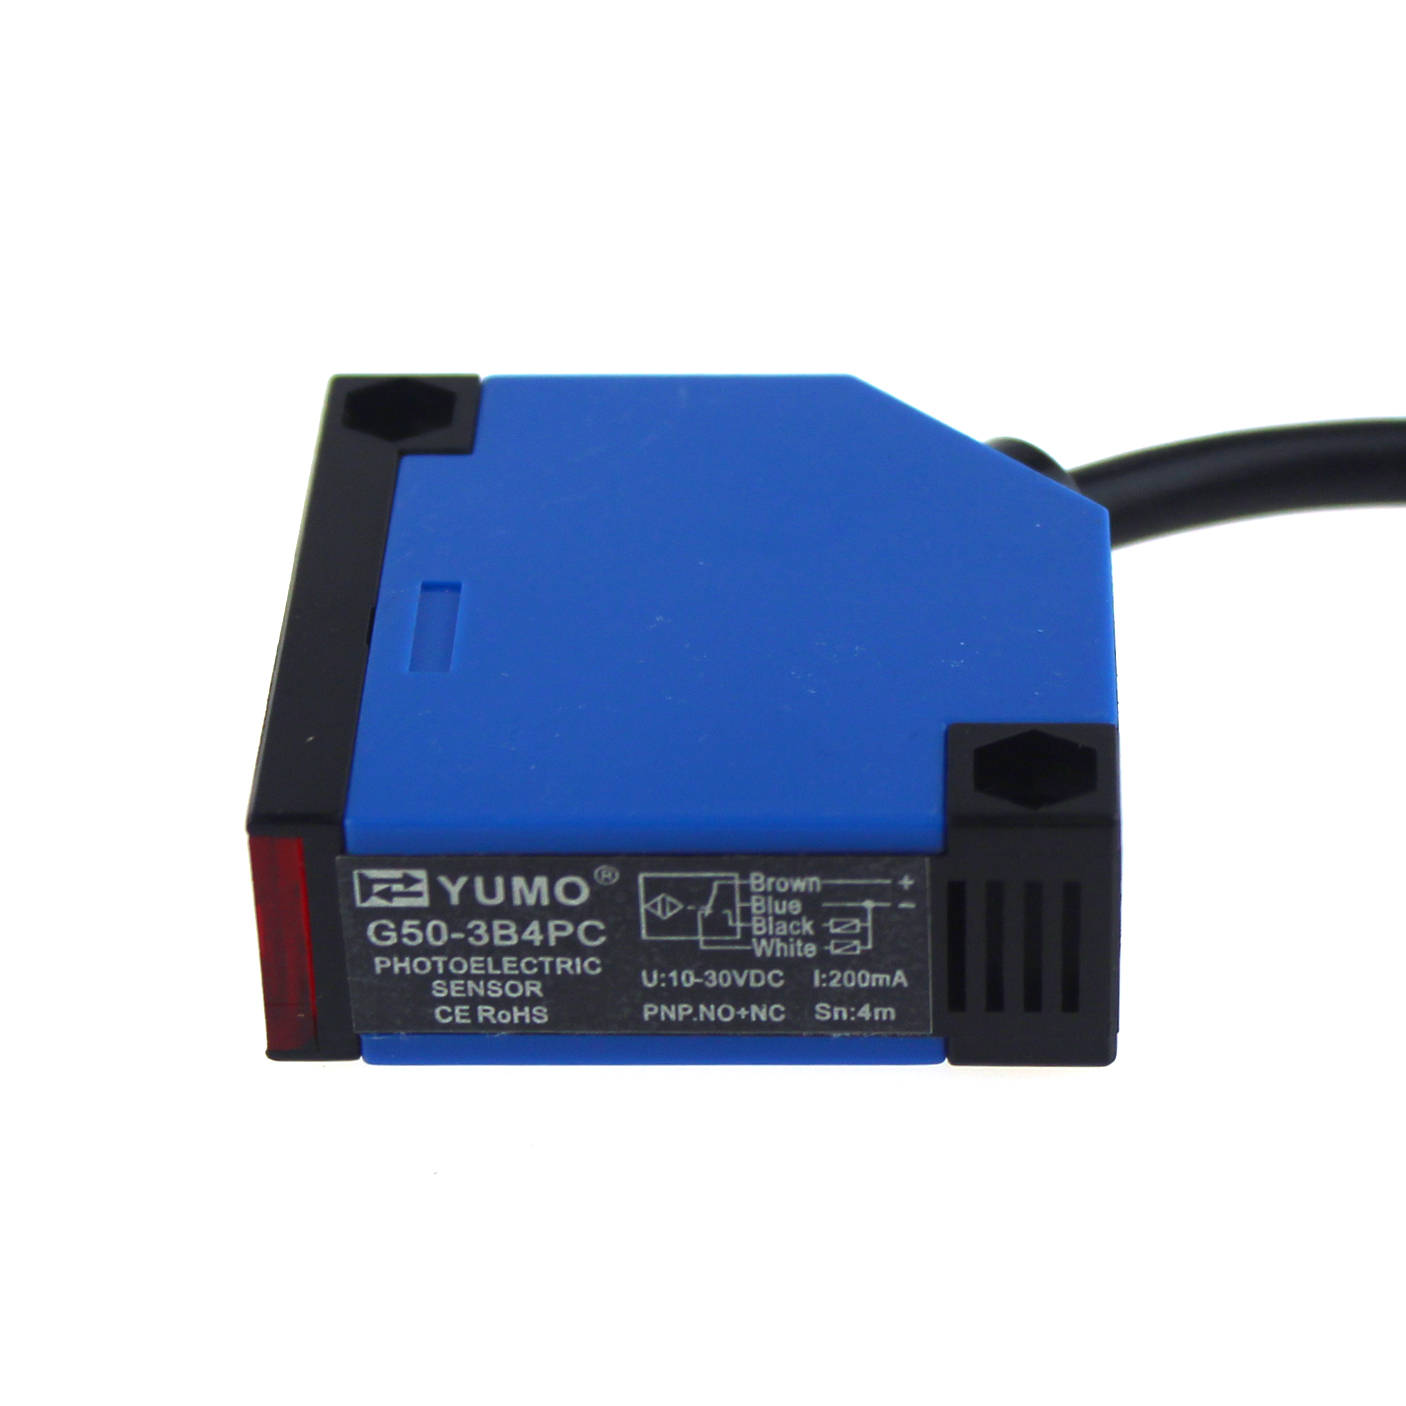 G50-3B4PC retro-reflective photoelectric switch